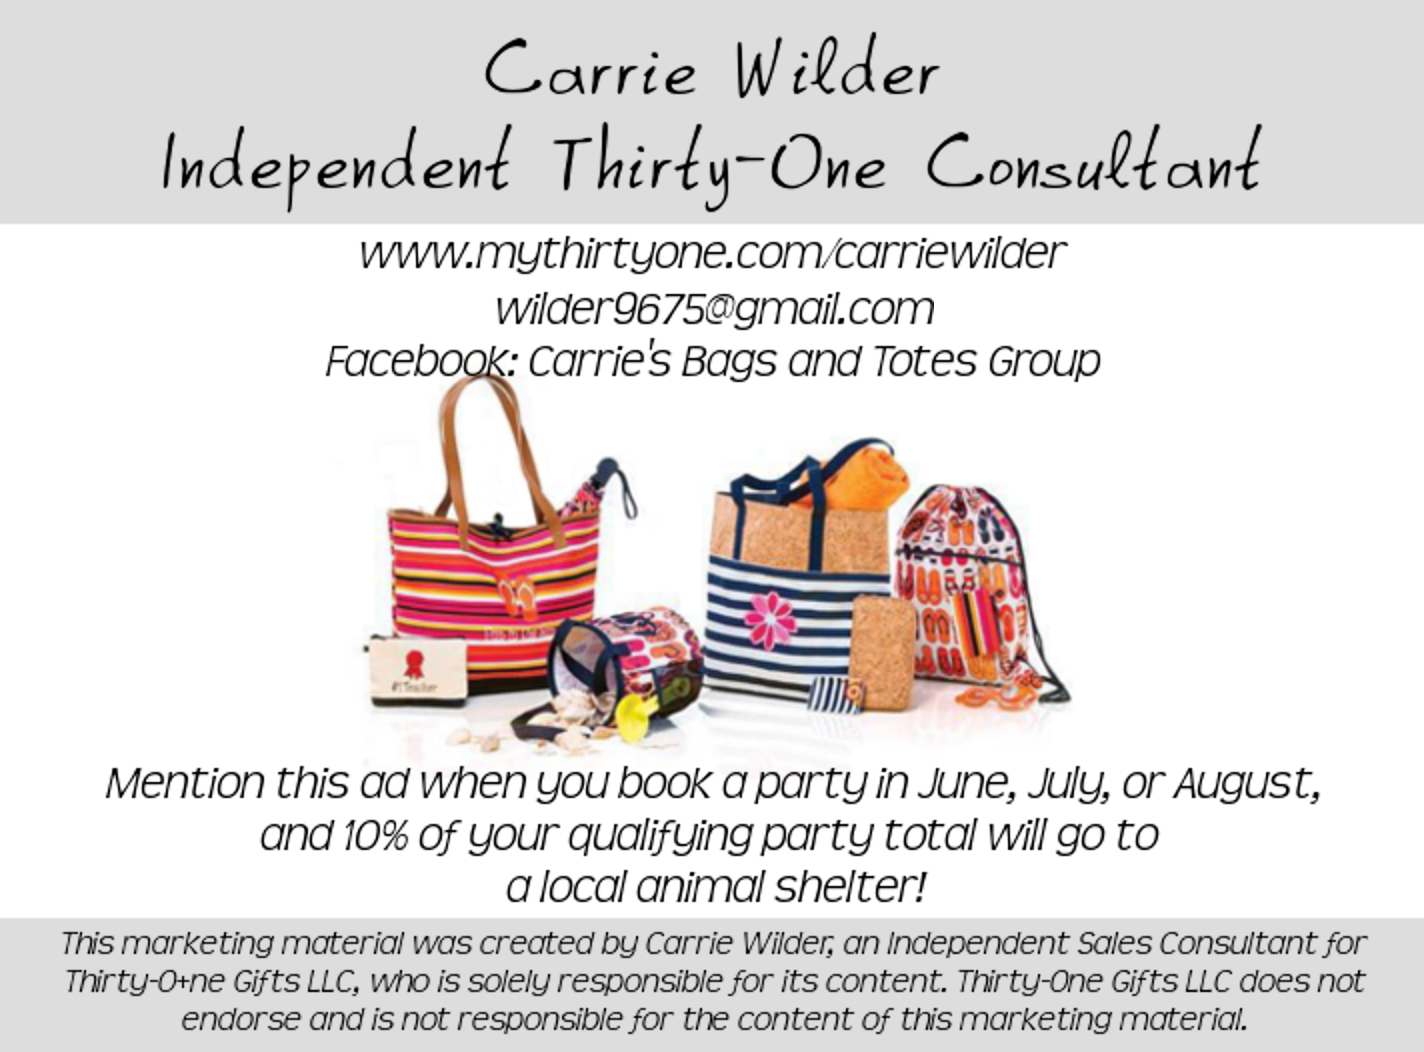 Carrie Wilder, Independent Thirty-One Consultant